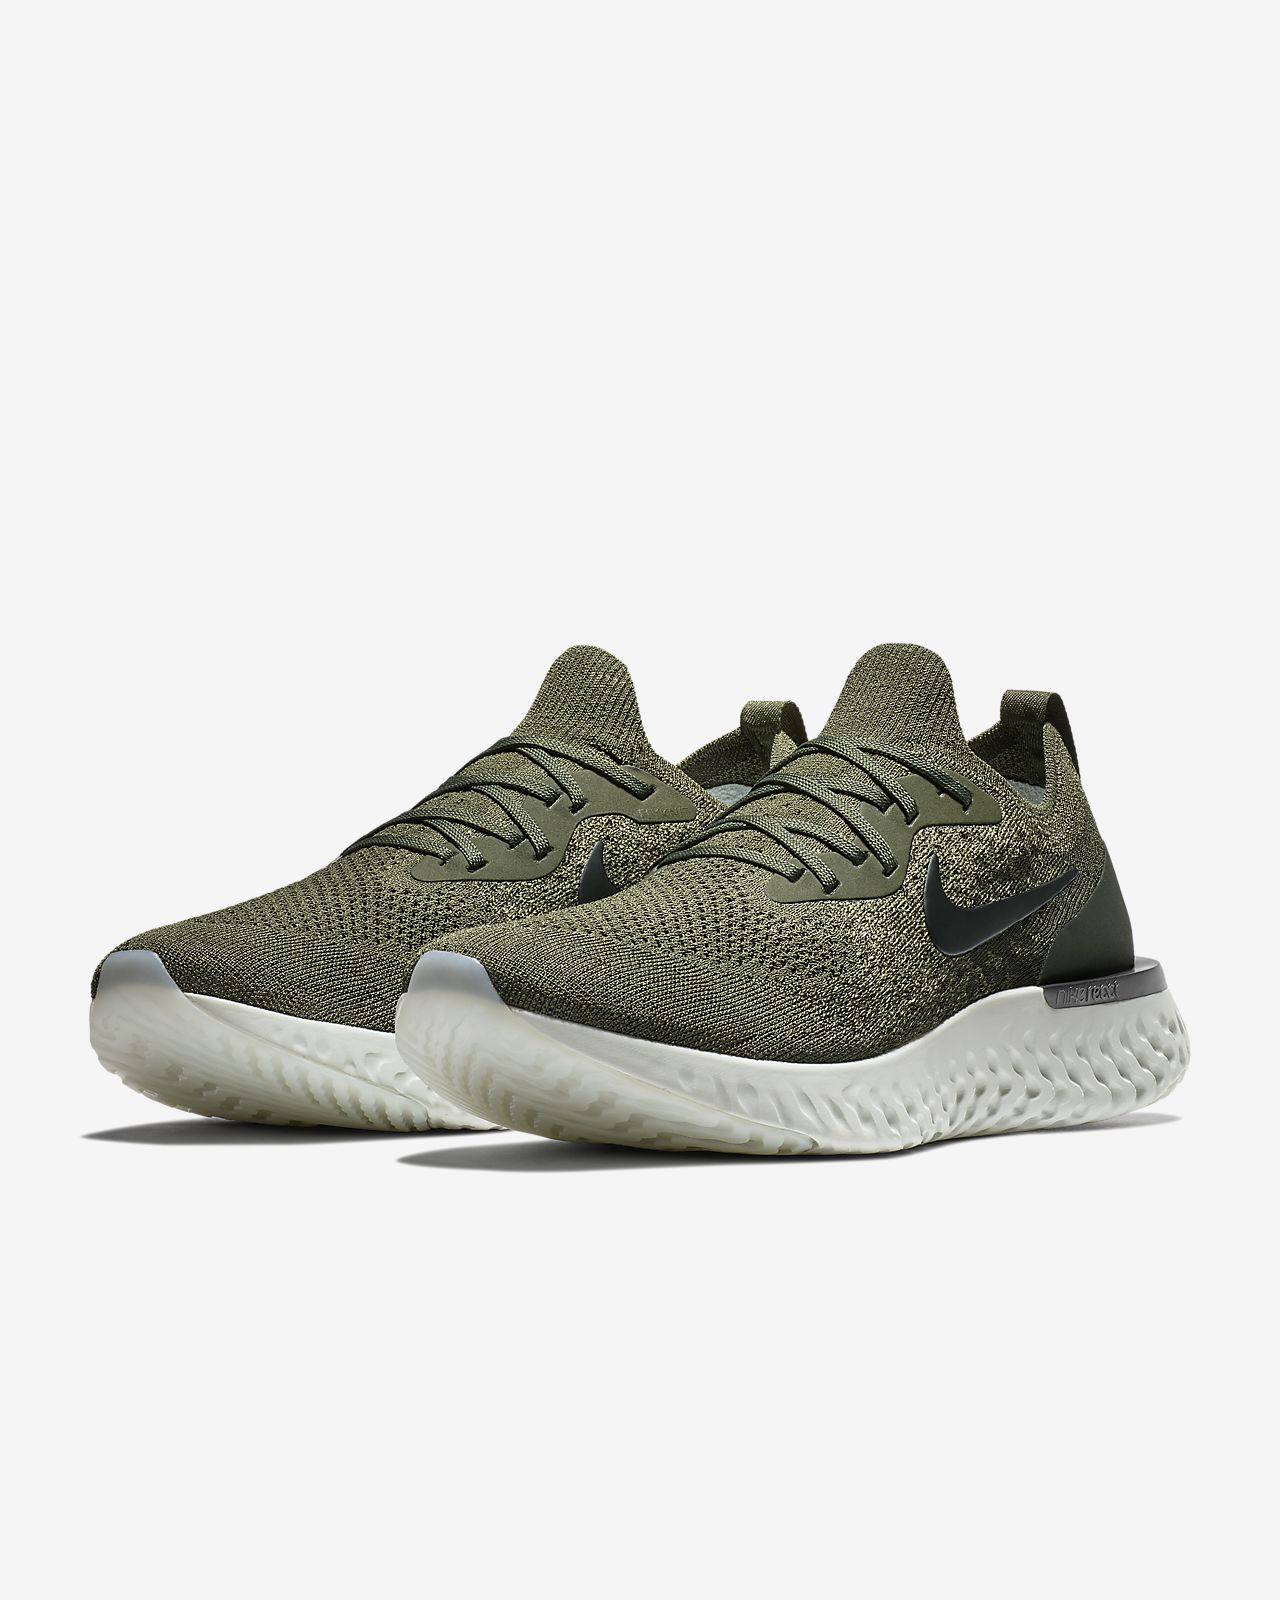 Mens Nike Order Epic React Flyknit Grey White Running Shoes